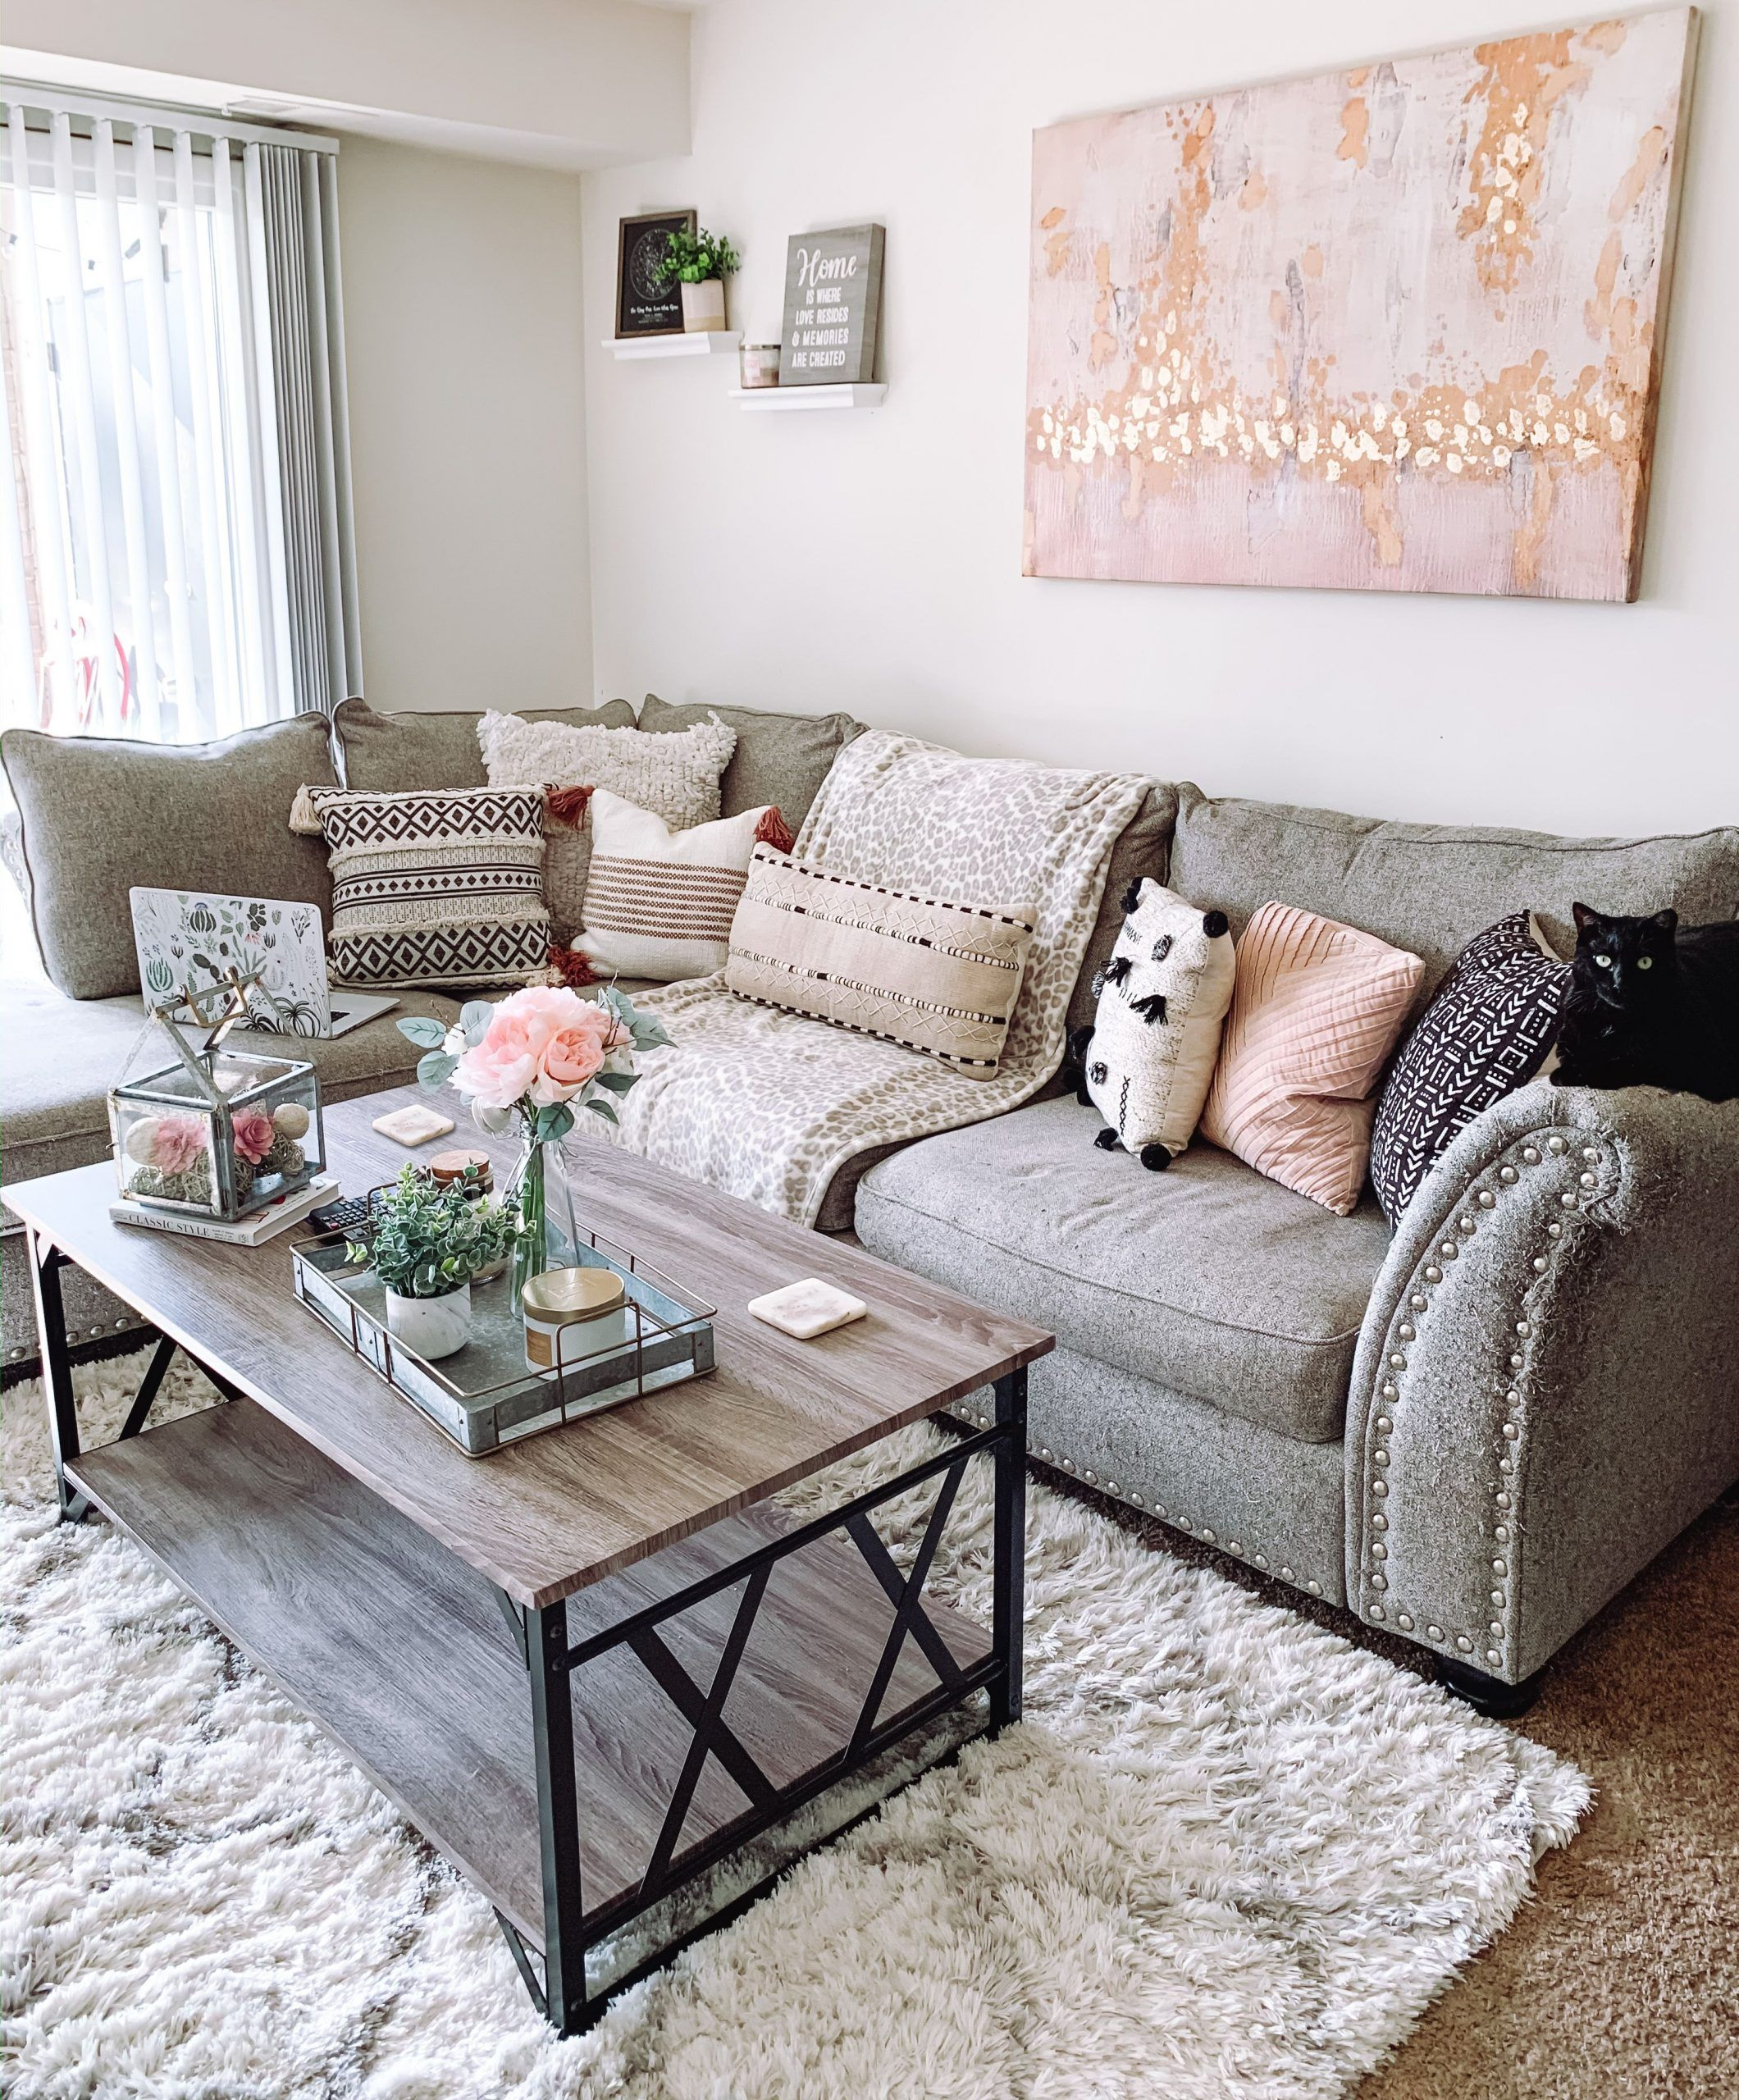 Living Room Decor On A Budget In 2020 Living Room Decor On A